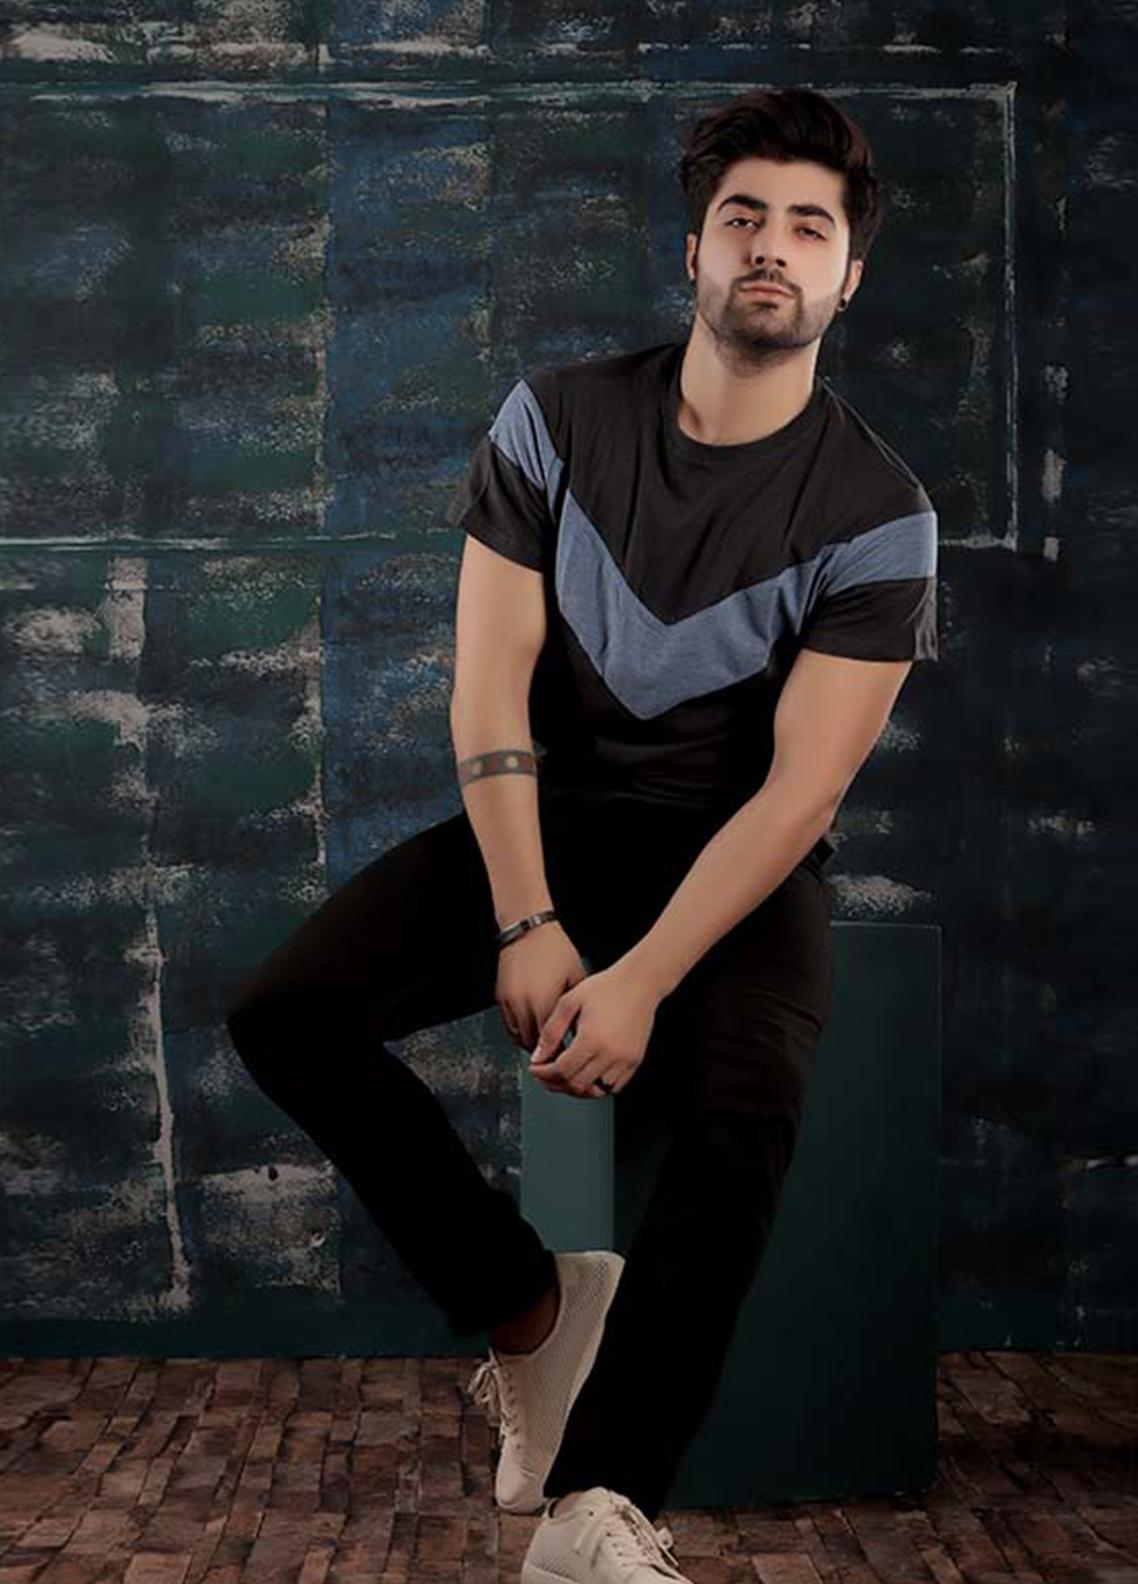 Red Tree Cotton Round Neck T-Shirts for Men - Black RT1597